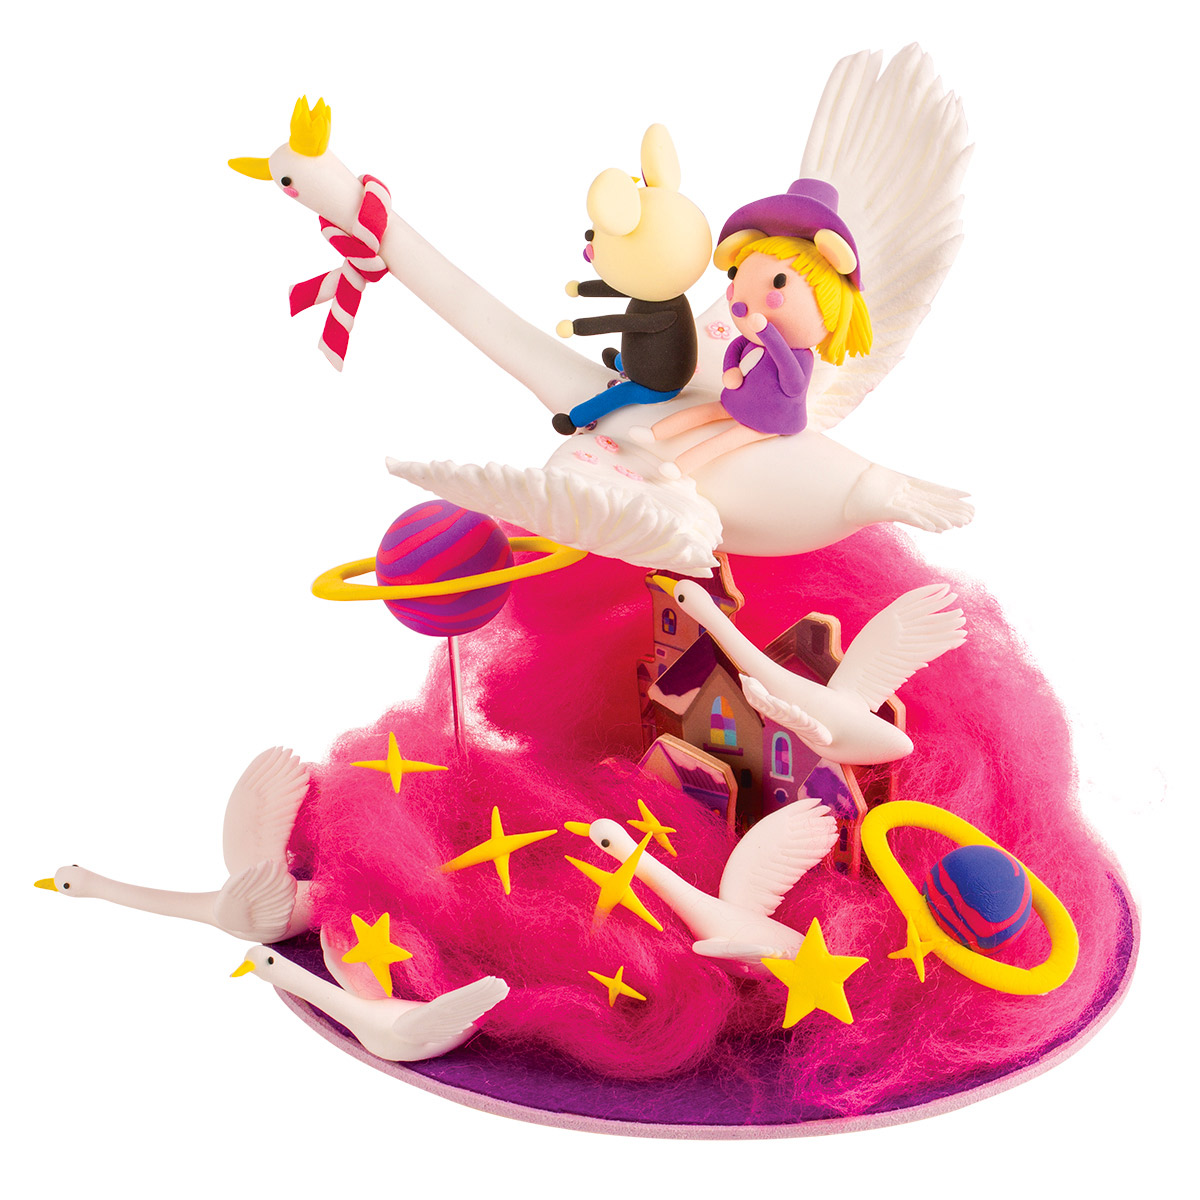 Modeling Clay / Imagination Set NT735 Star and Wishes